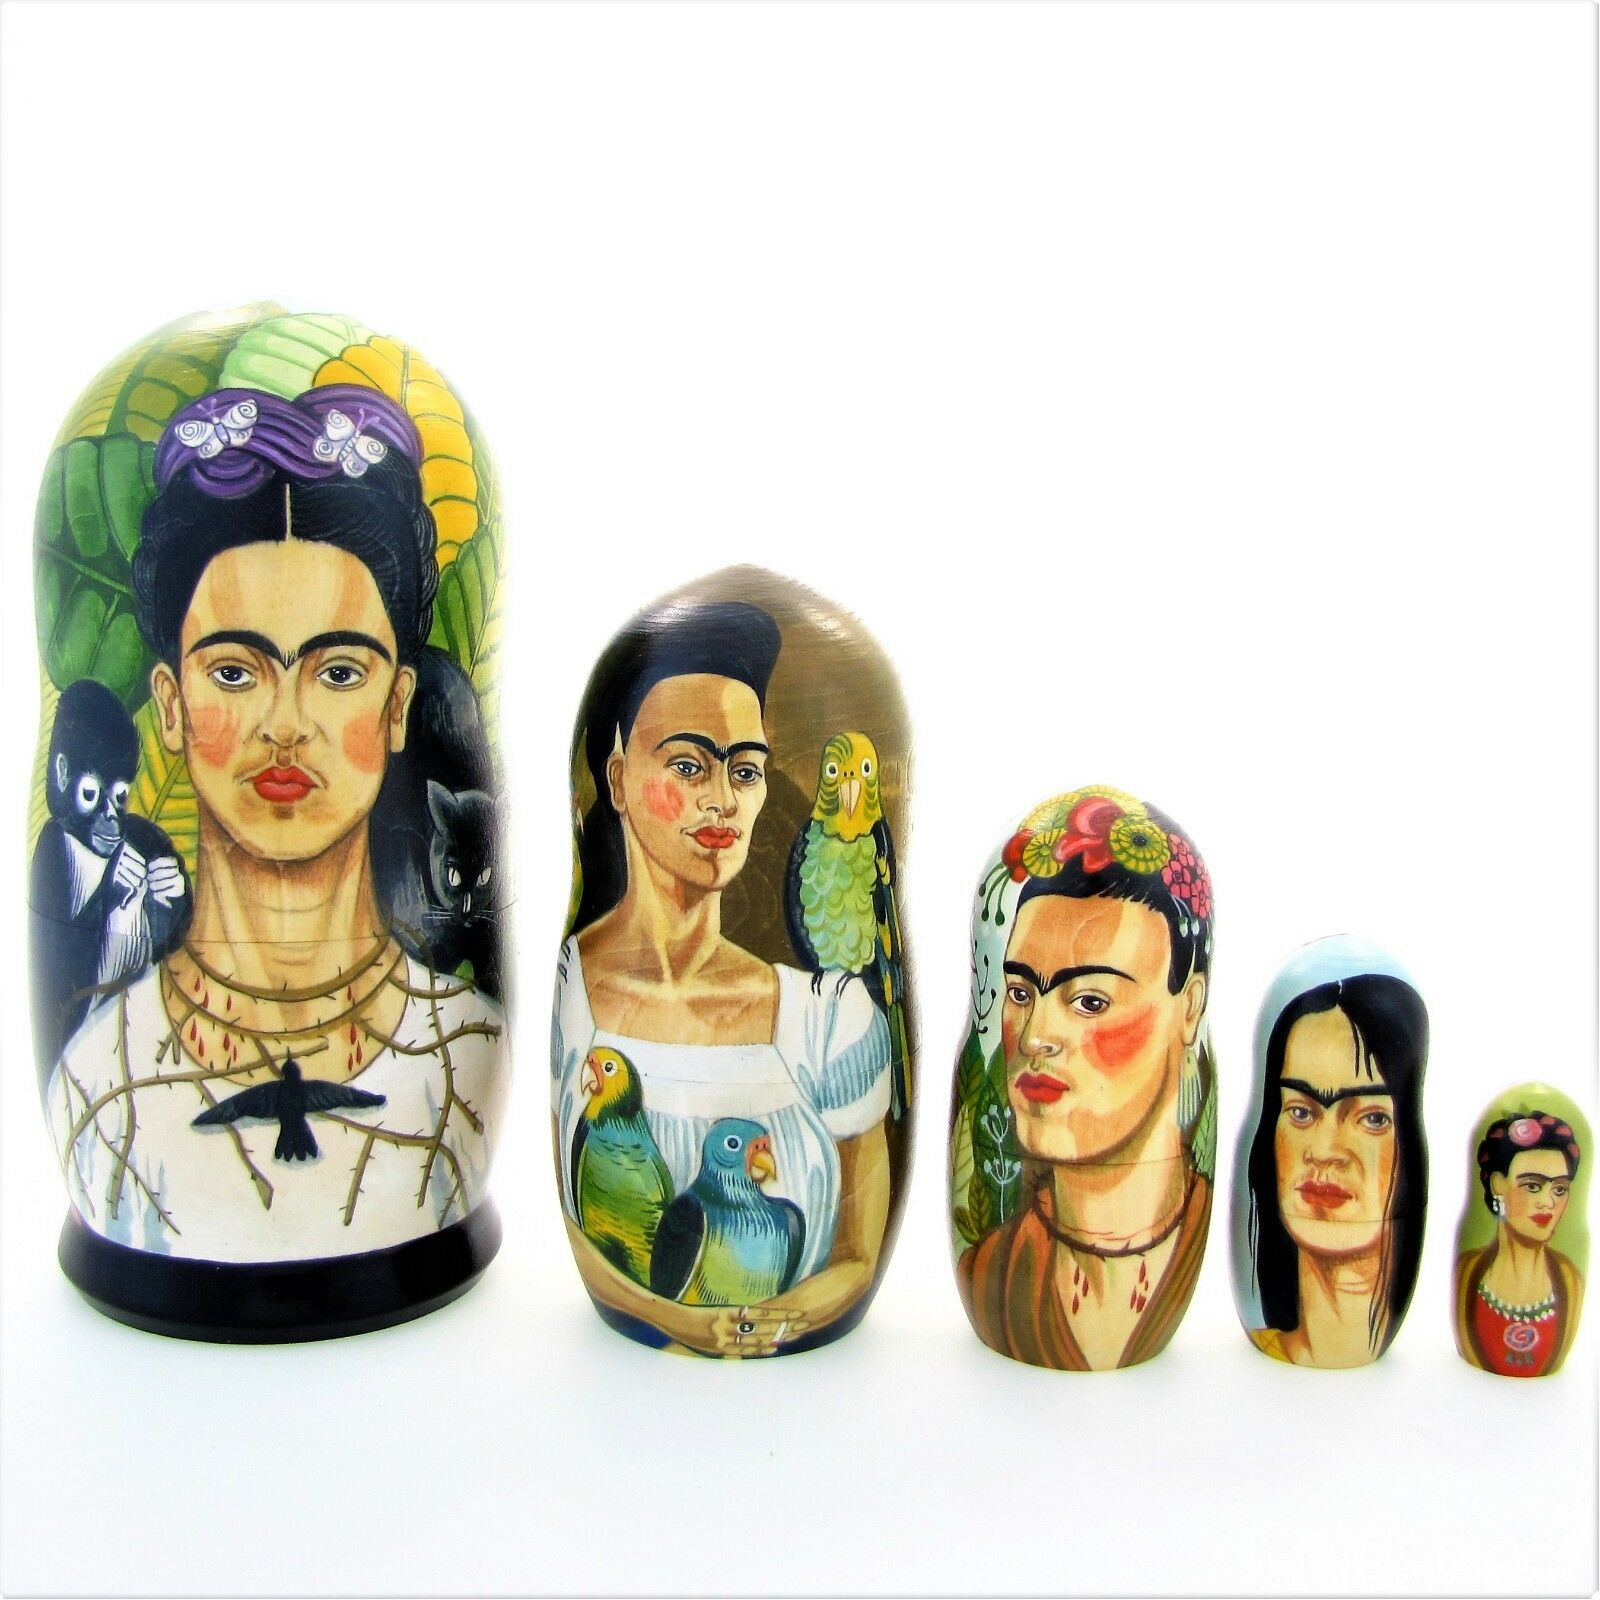 5 Poupées russes exclusive H19 Frida Kahlo Matriochka Russian Doll Matrioshka